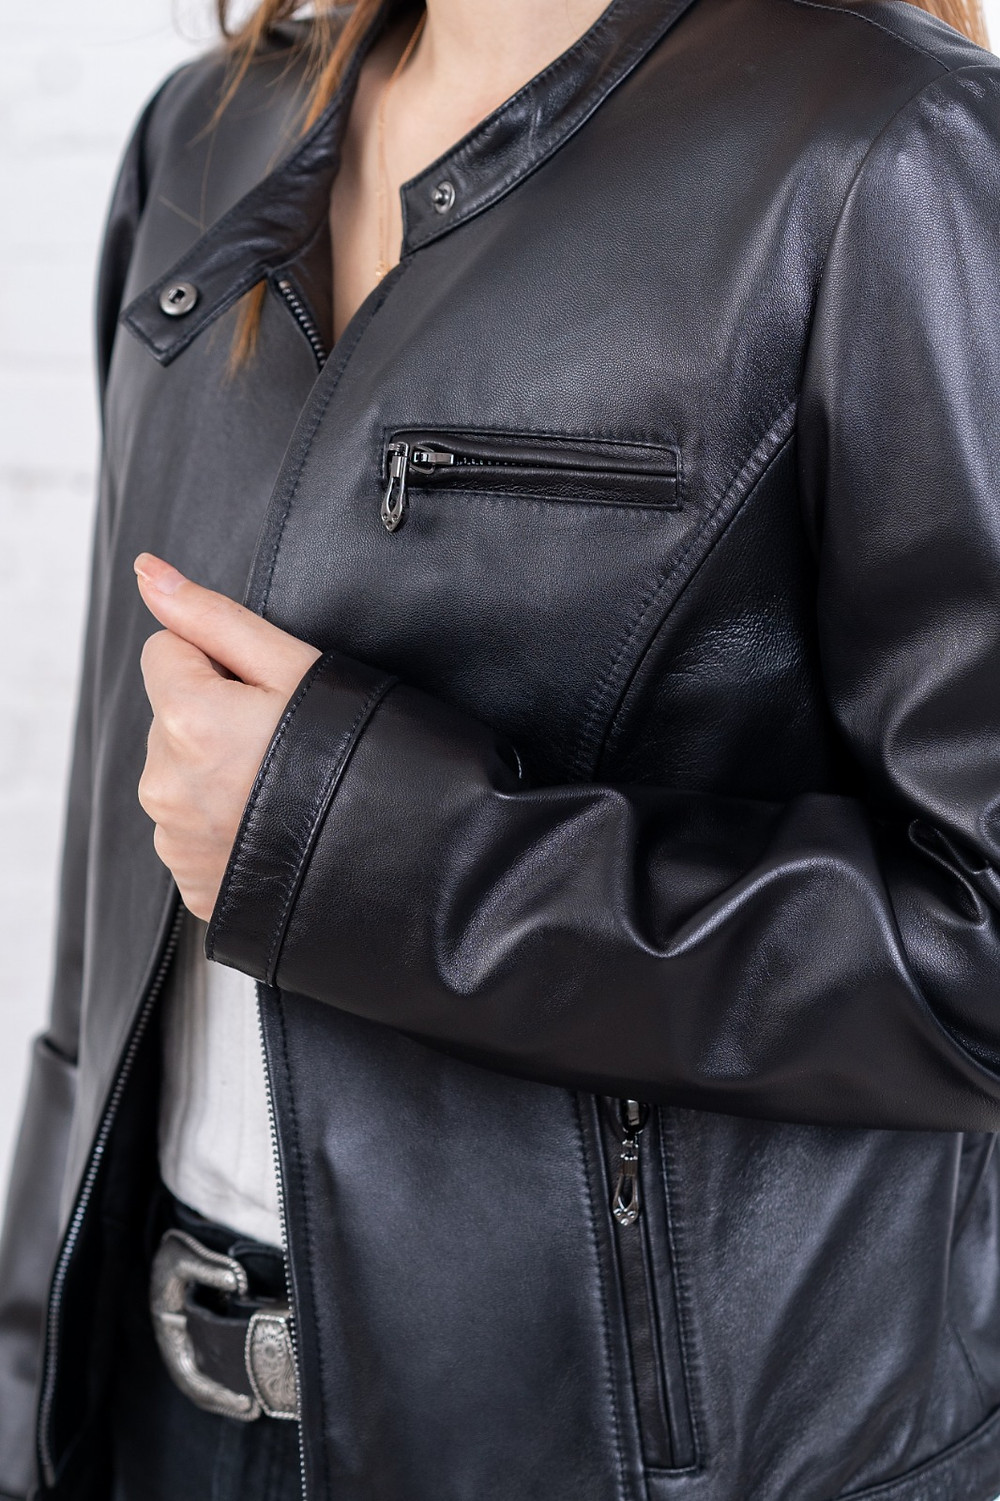 ENIGMA Leather Jacket Collection